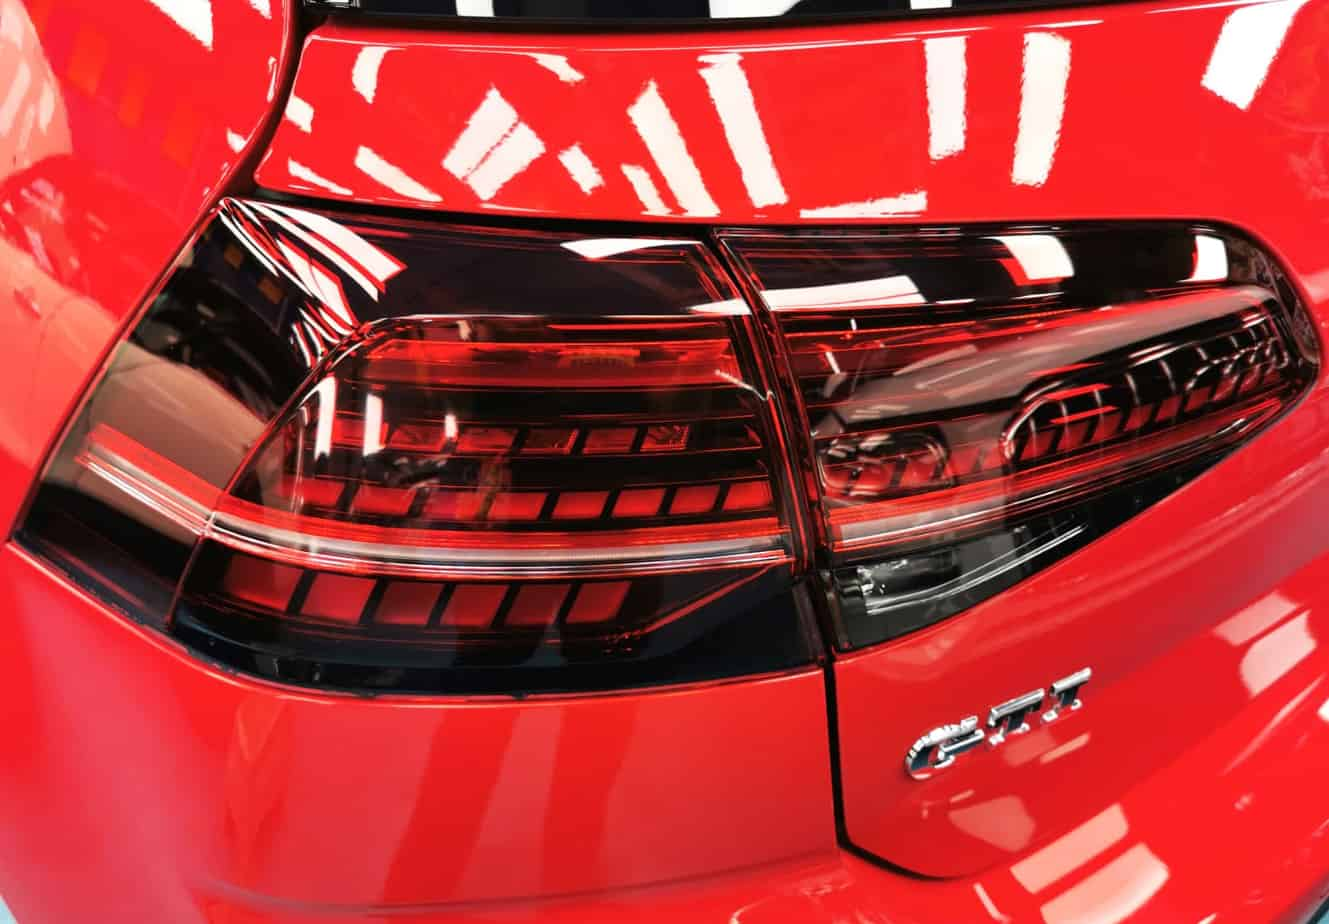 Red Hot Volkswagen Golf - taillights